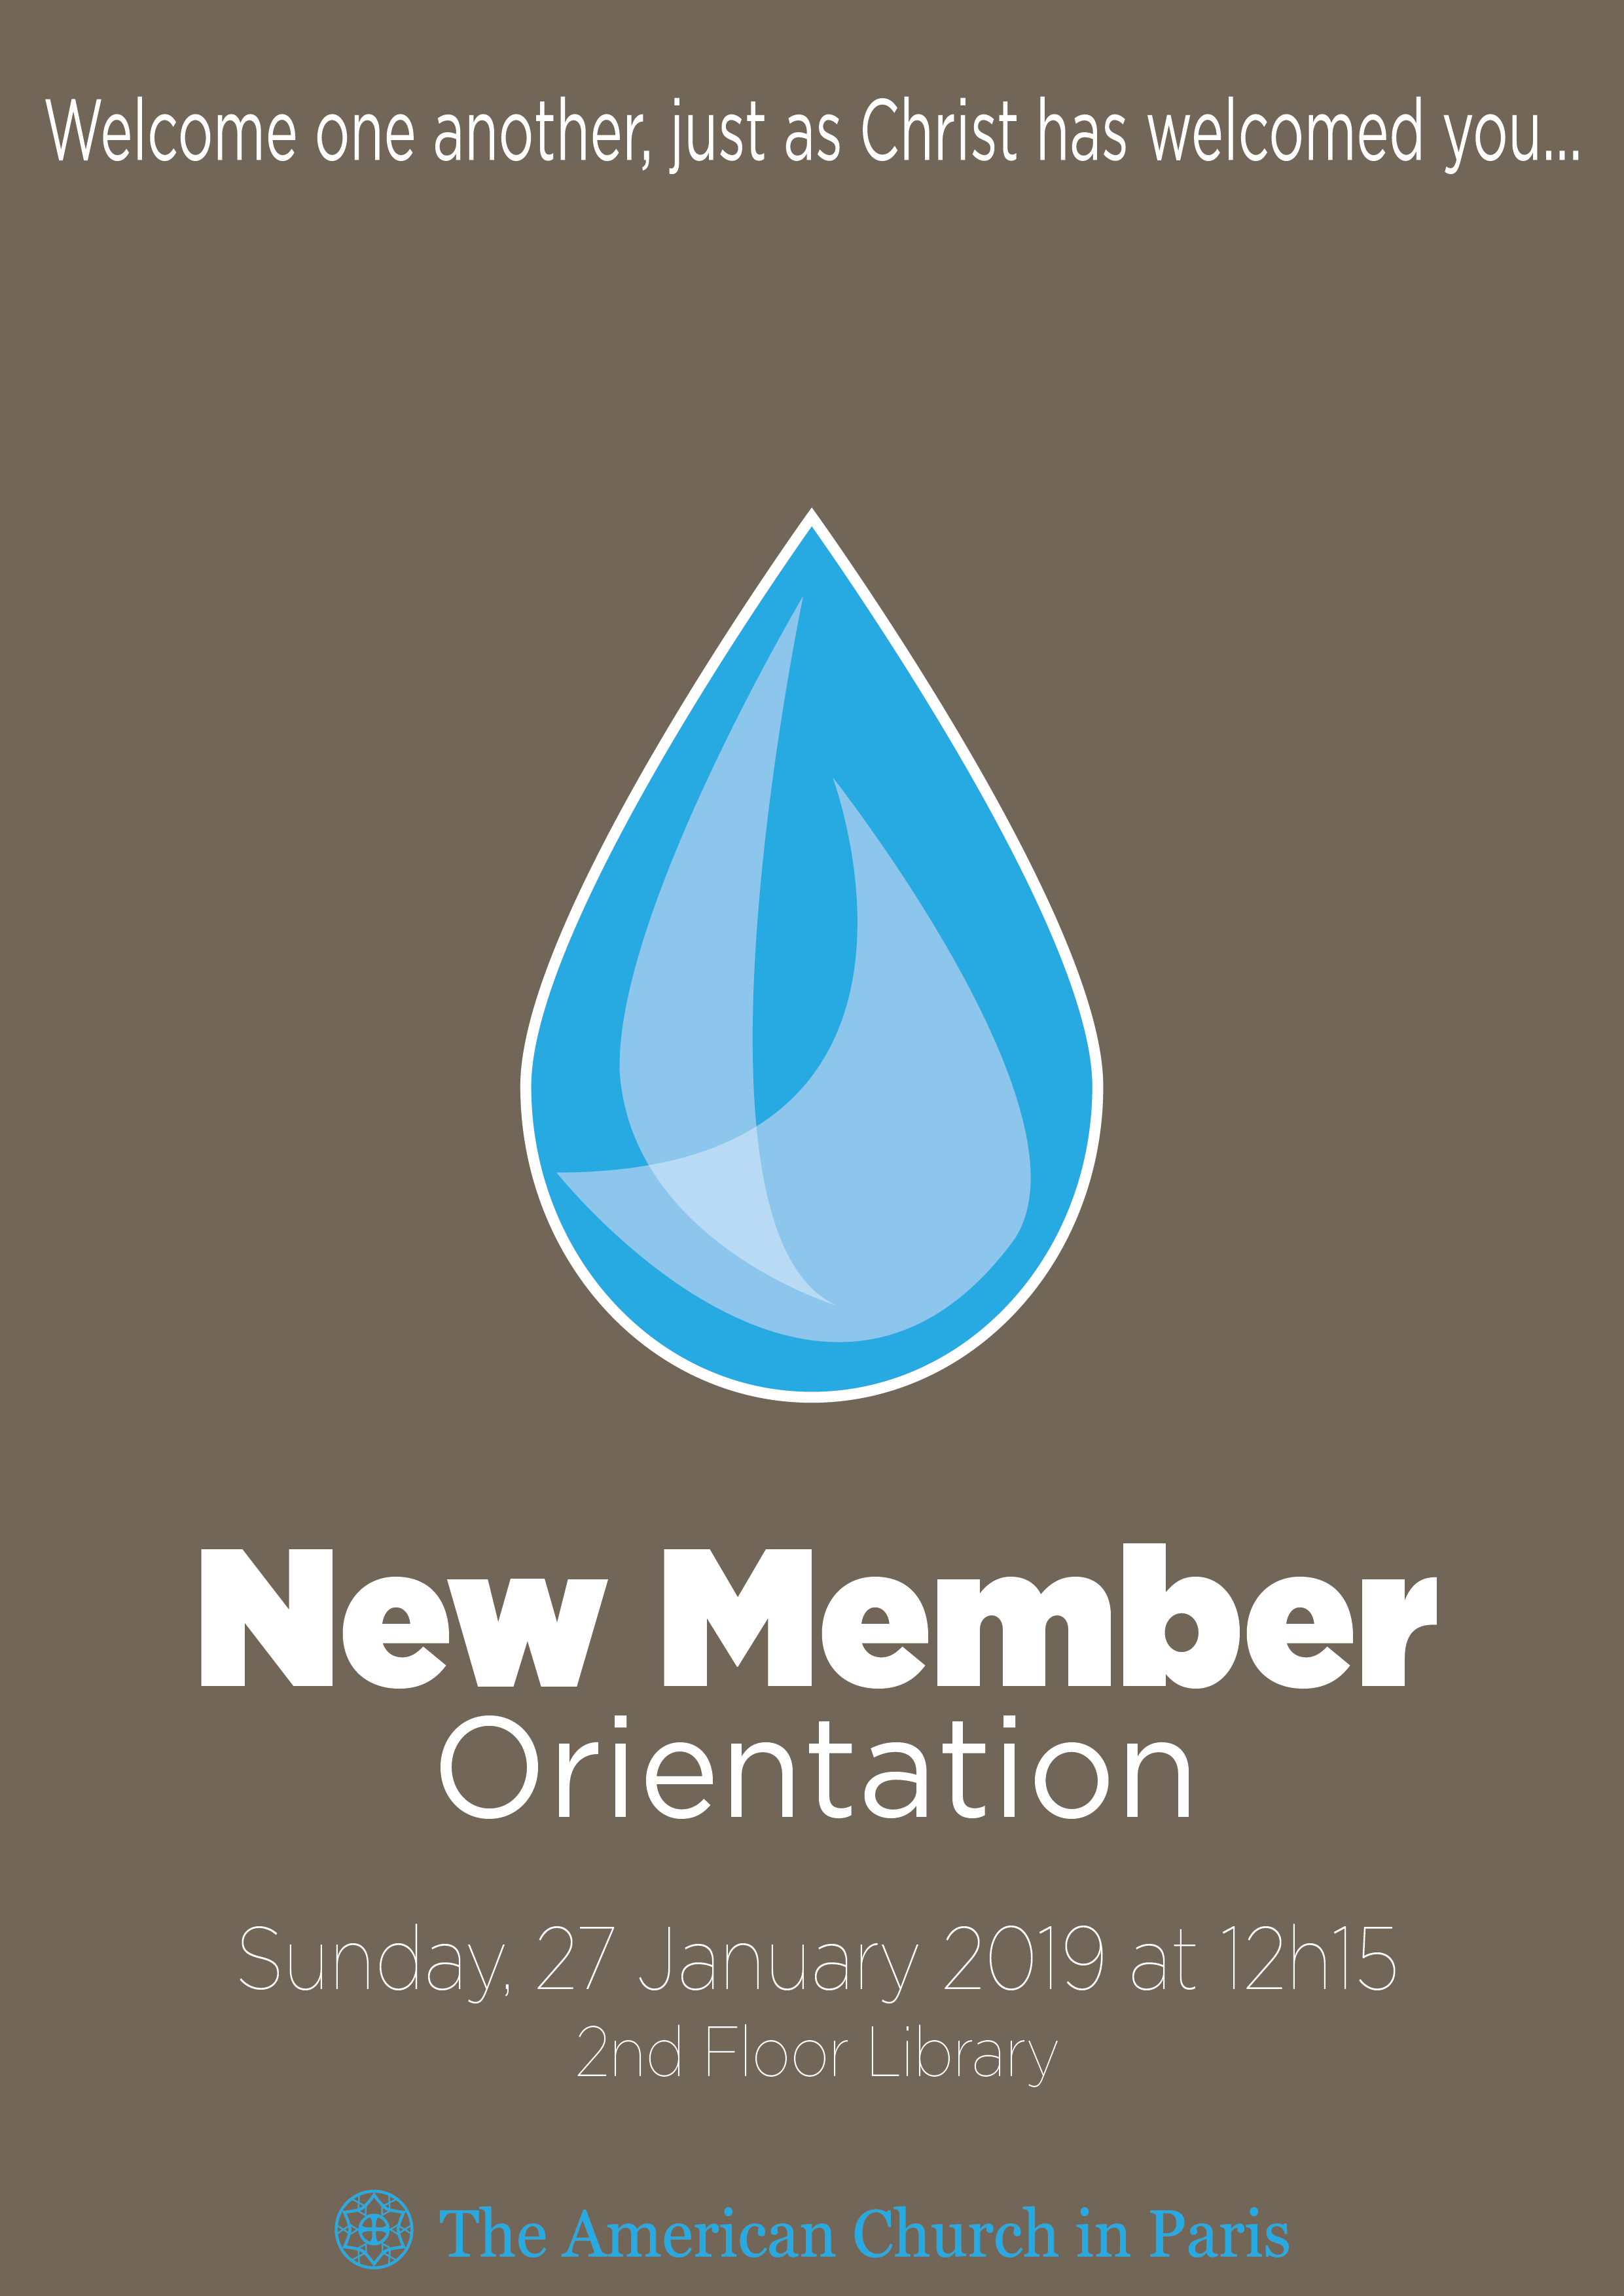 New Member Orientation - 27 January 2019